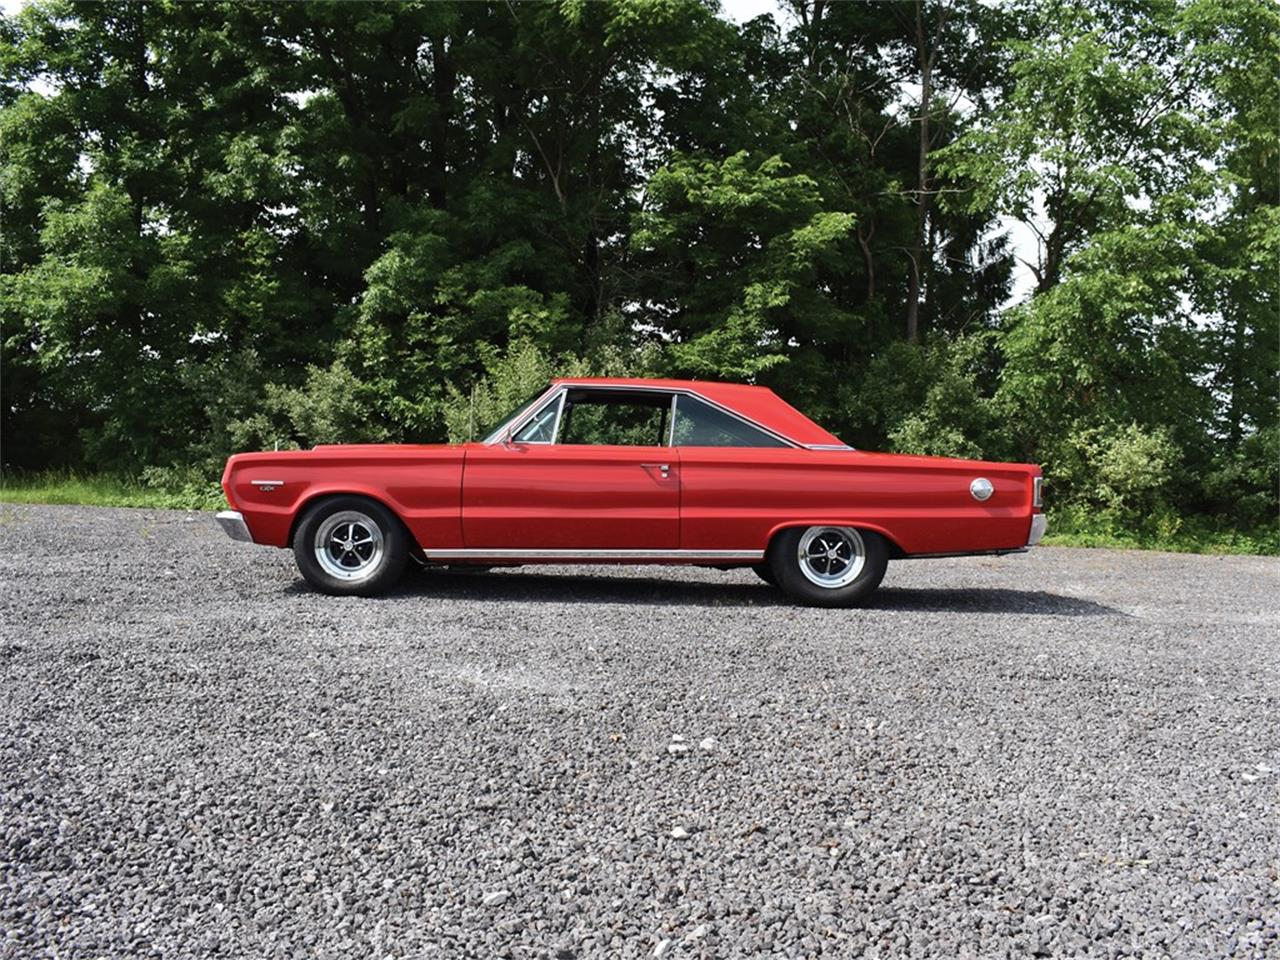 Large Picture of Classic '67 Plymouth GTX located in Auburn Indiana Auction Vehicle Offered by RM Sotheby's - NR74